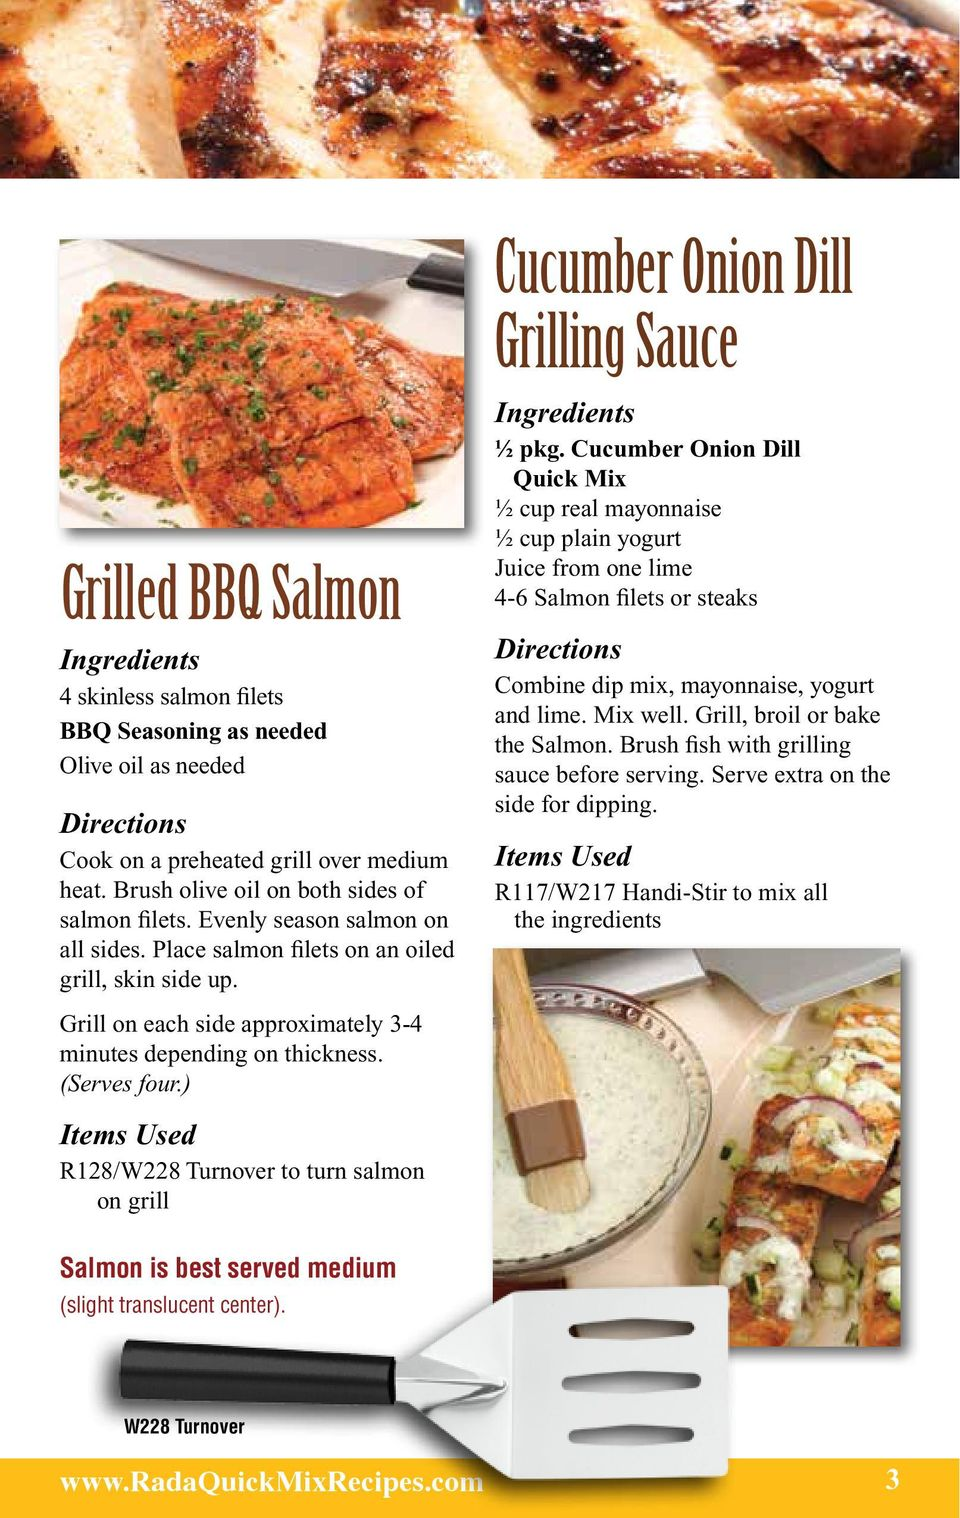 ) R128/W228 Turnover to turn salmon on grill Cucumber Onion Dill Grilling Sauce ½ pkg.